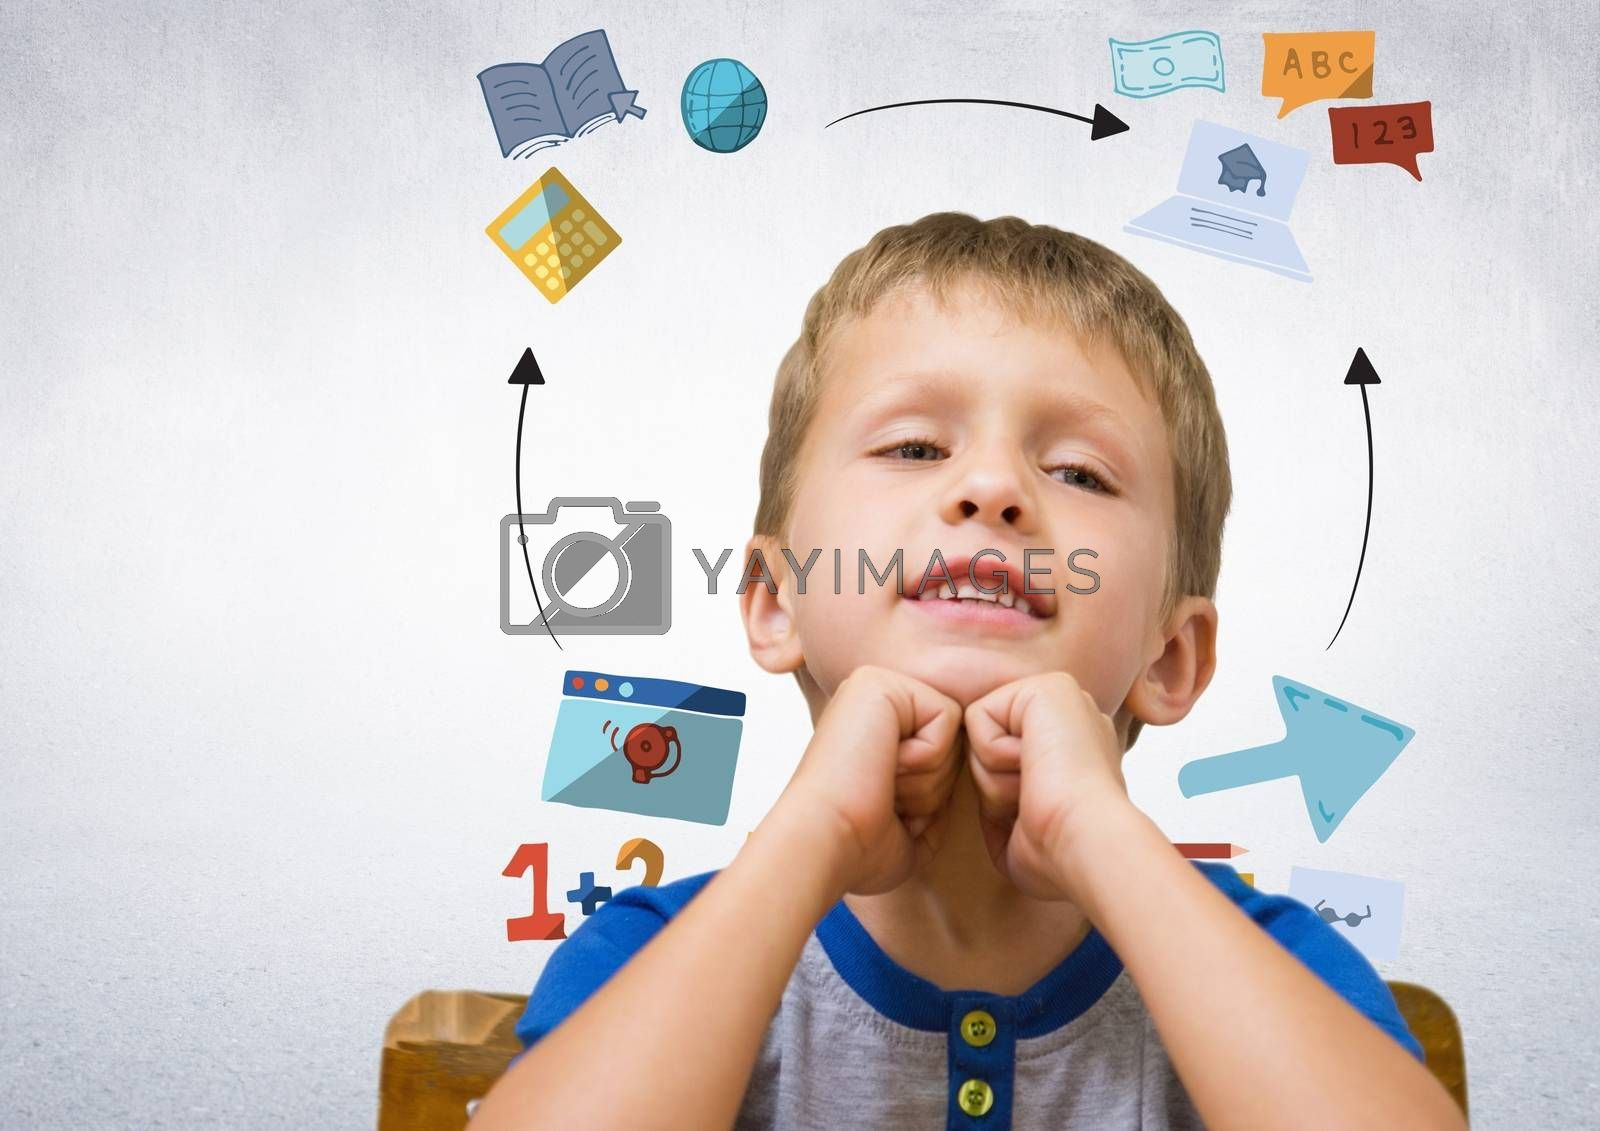 Digital composite of Boy with education graphic drawings